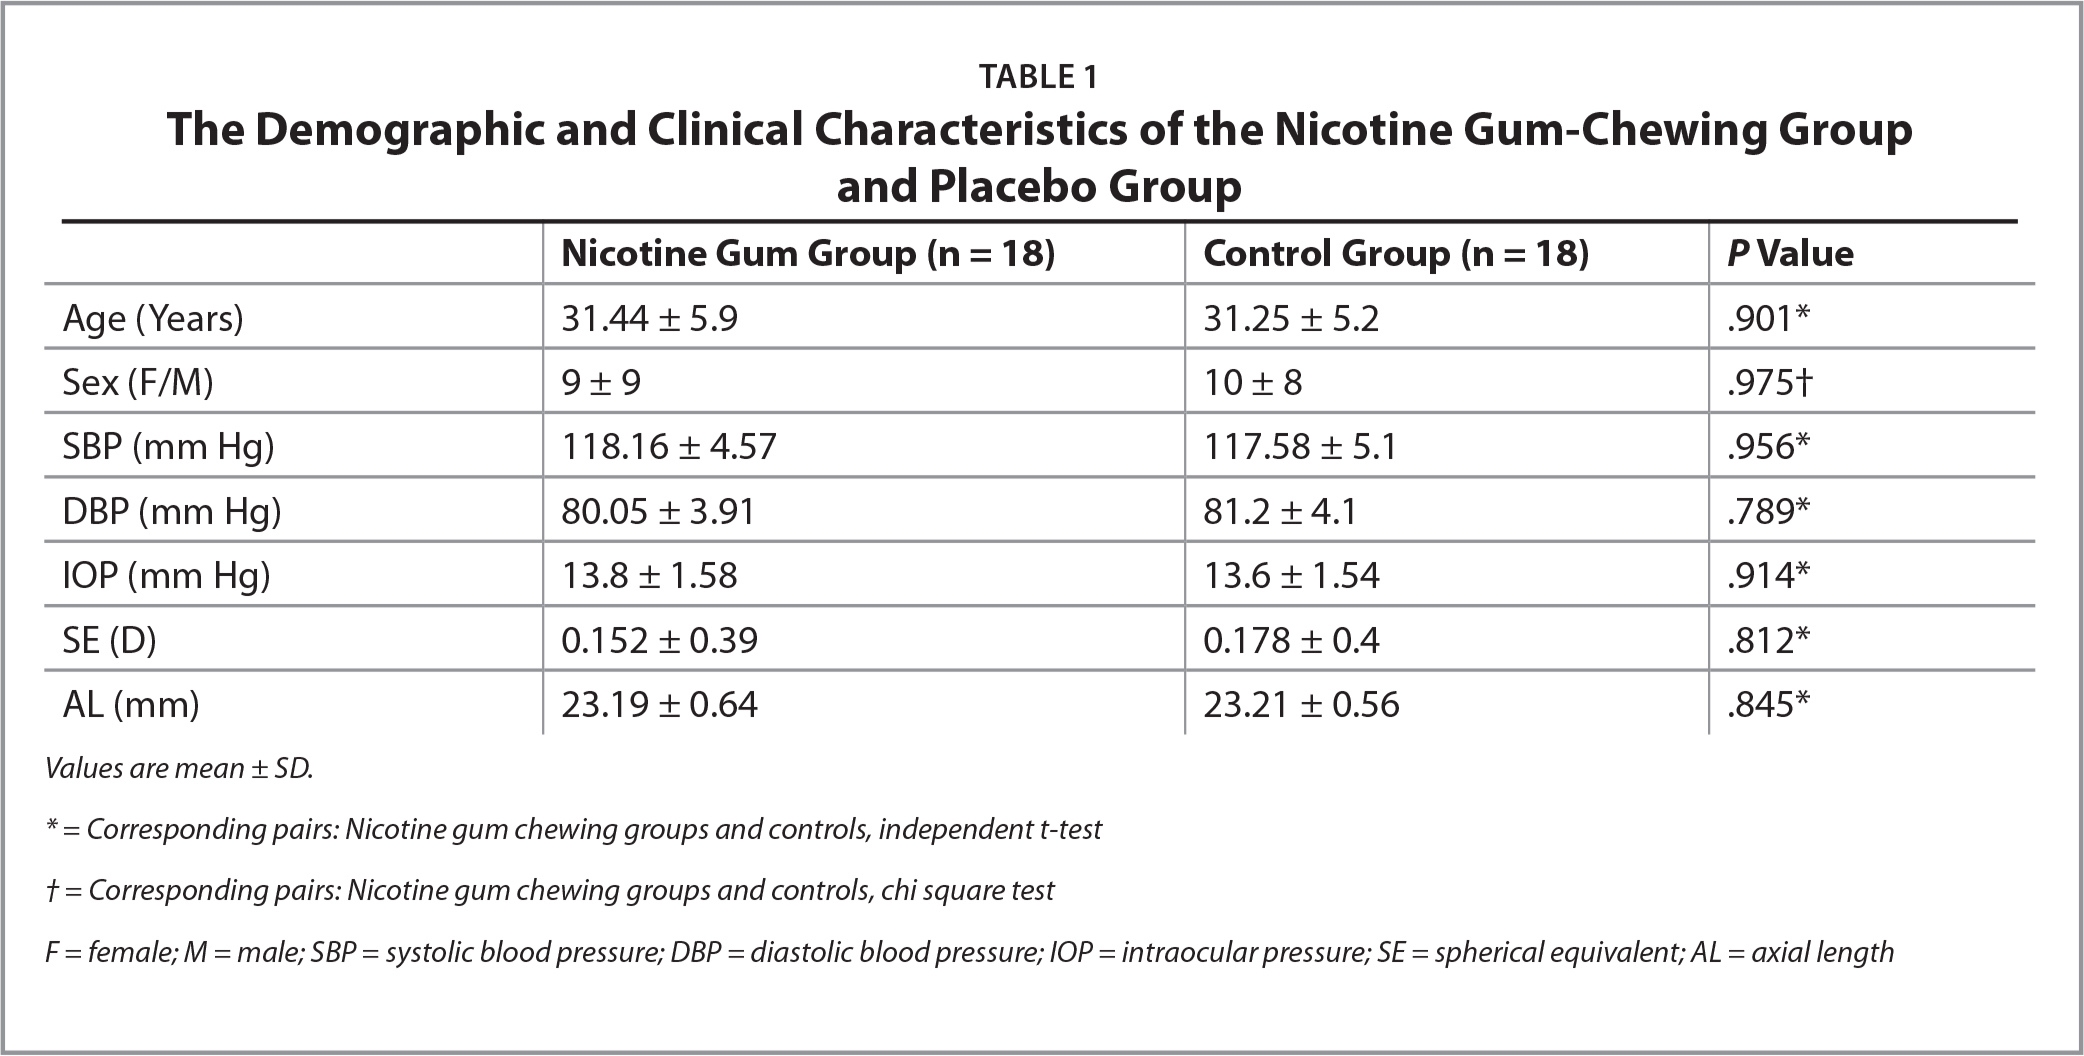 The Demographic and Clinical Characteristics of the Nicotine Gum-Chewing Groupand Placebo Group